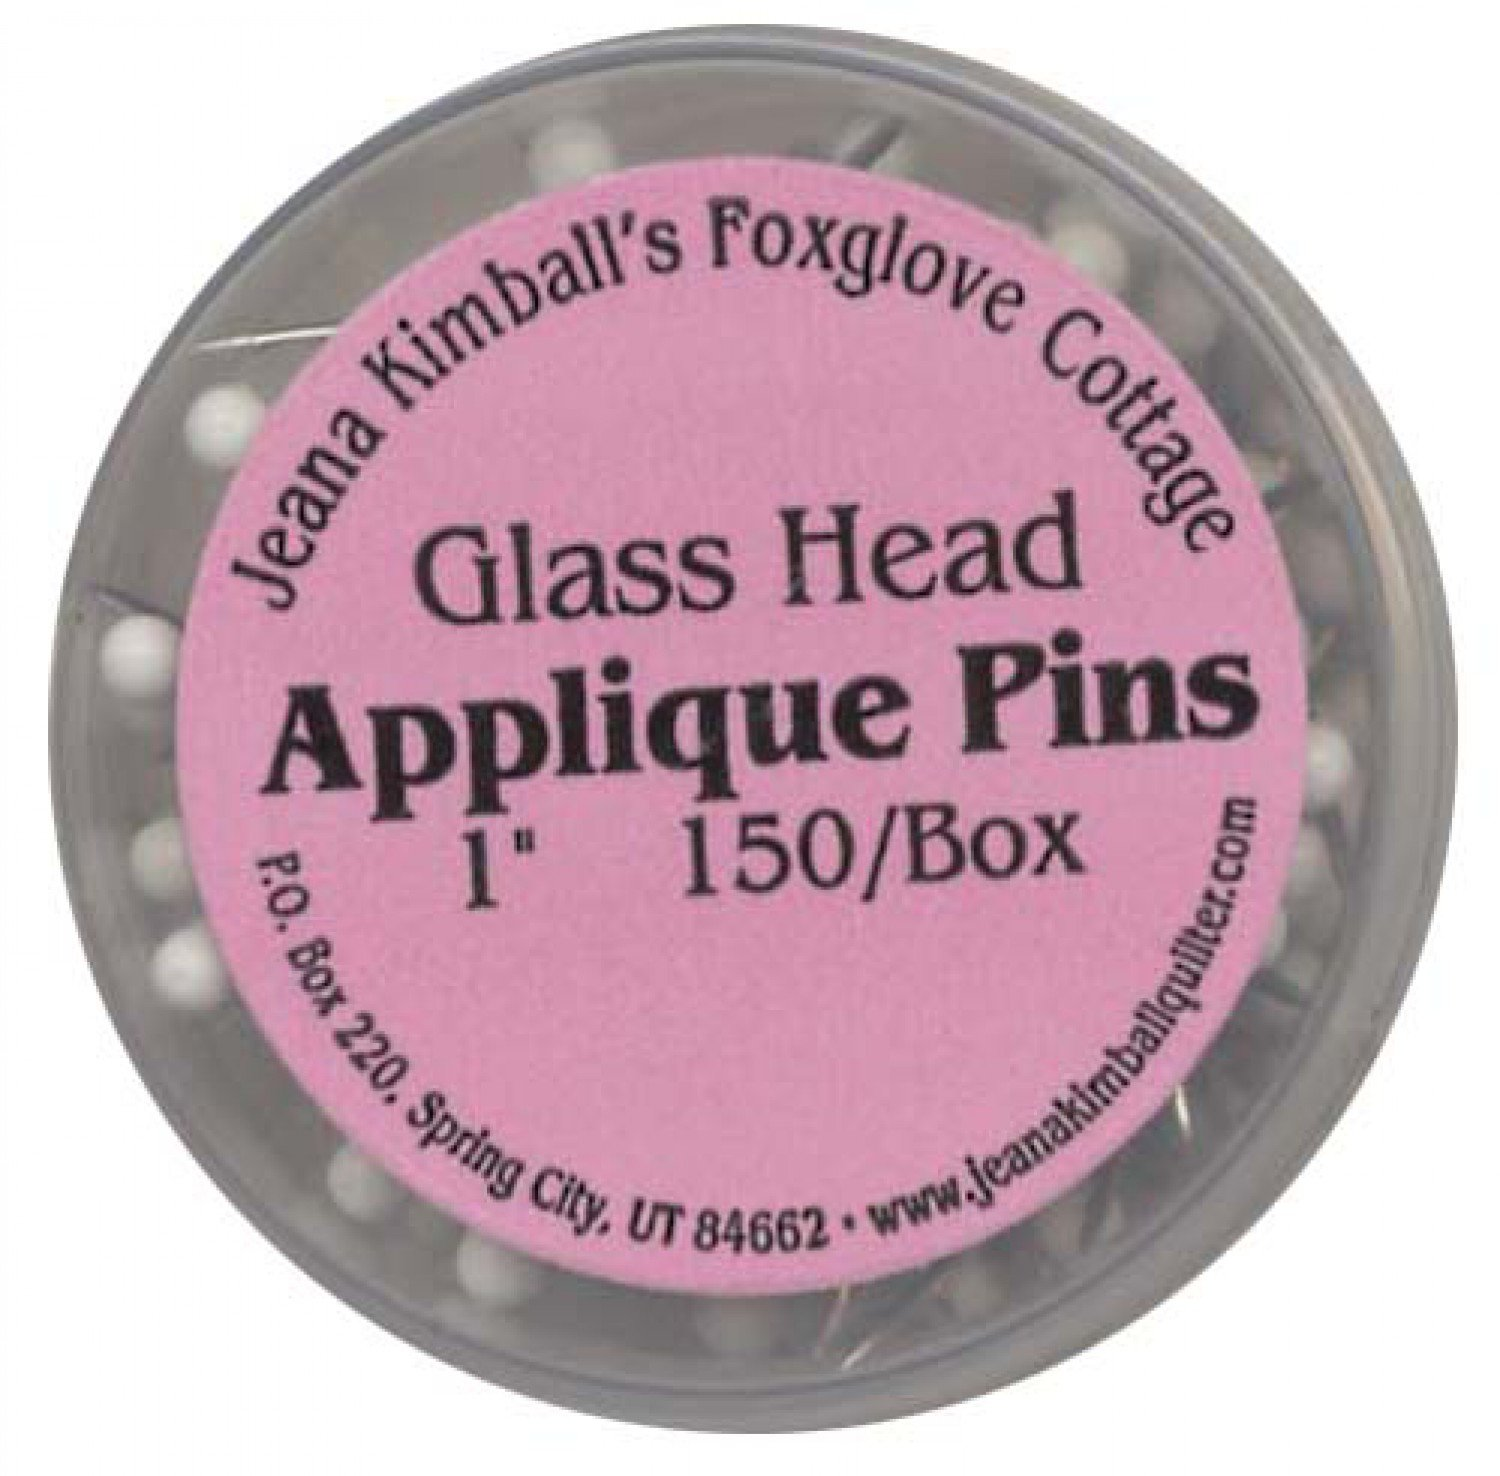 Jeanna Kimball's Foxglove Cottage 150 Glass-Head Applique Pins 1